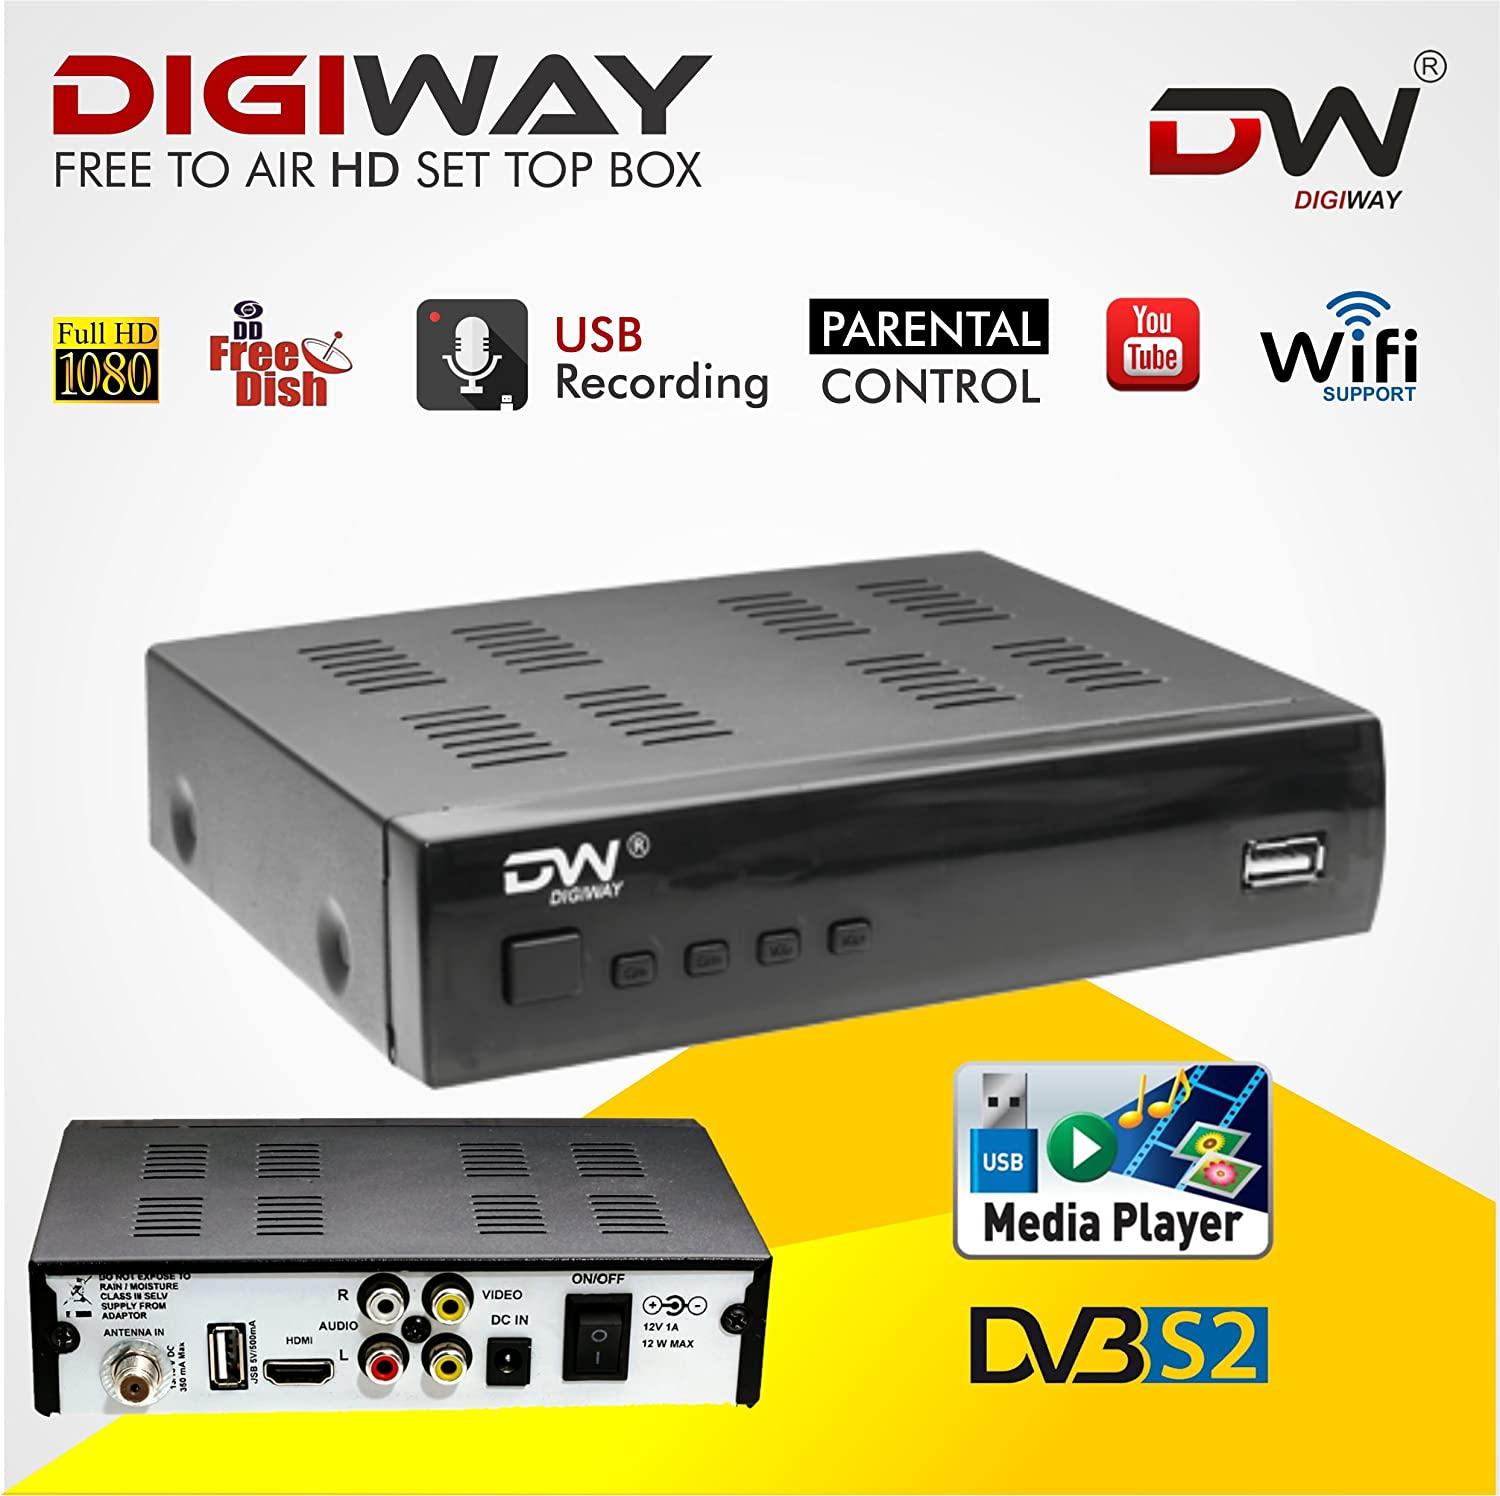 Digiway Free To Air Dd Direct Dth Set Top Box Dish Work Hd Wiring Diagram Picture Electronics